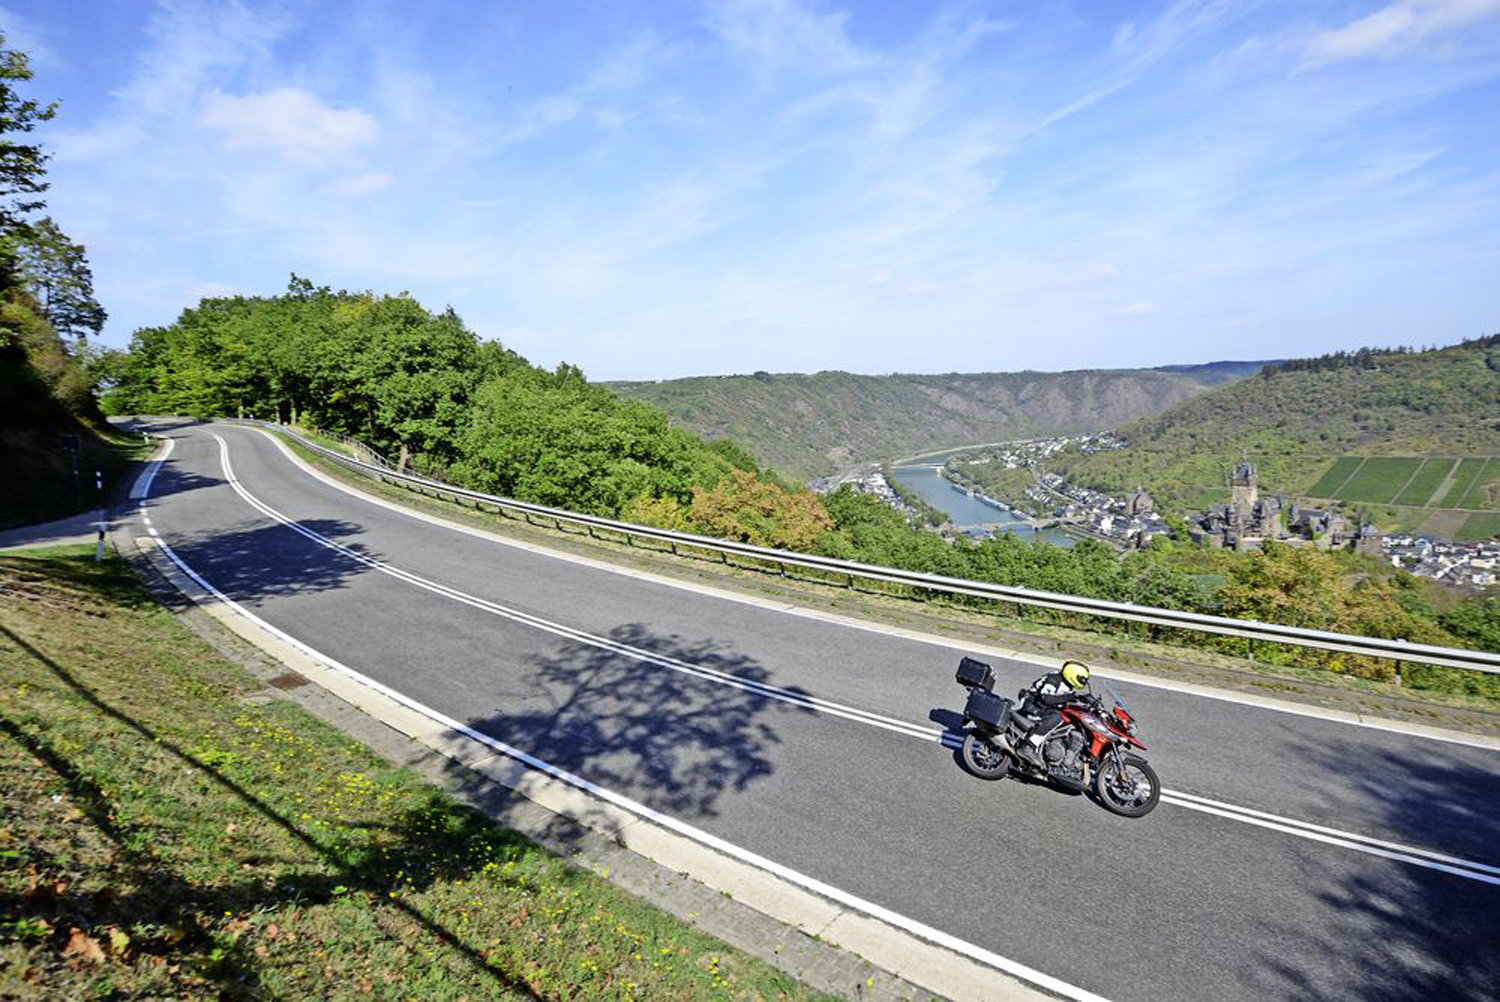 Some stunning views are to be had when riding alongside the Moselle river